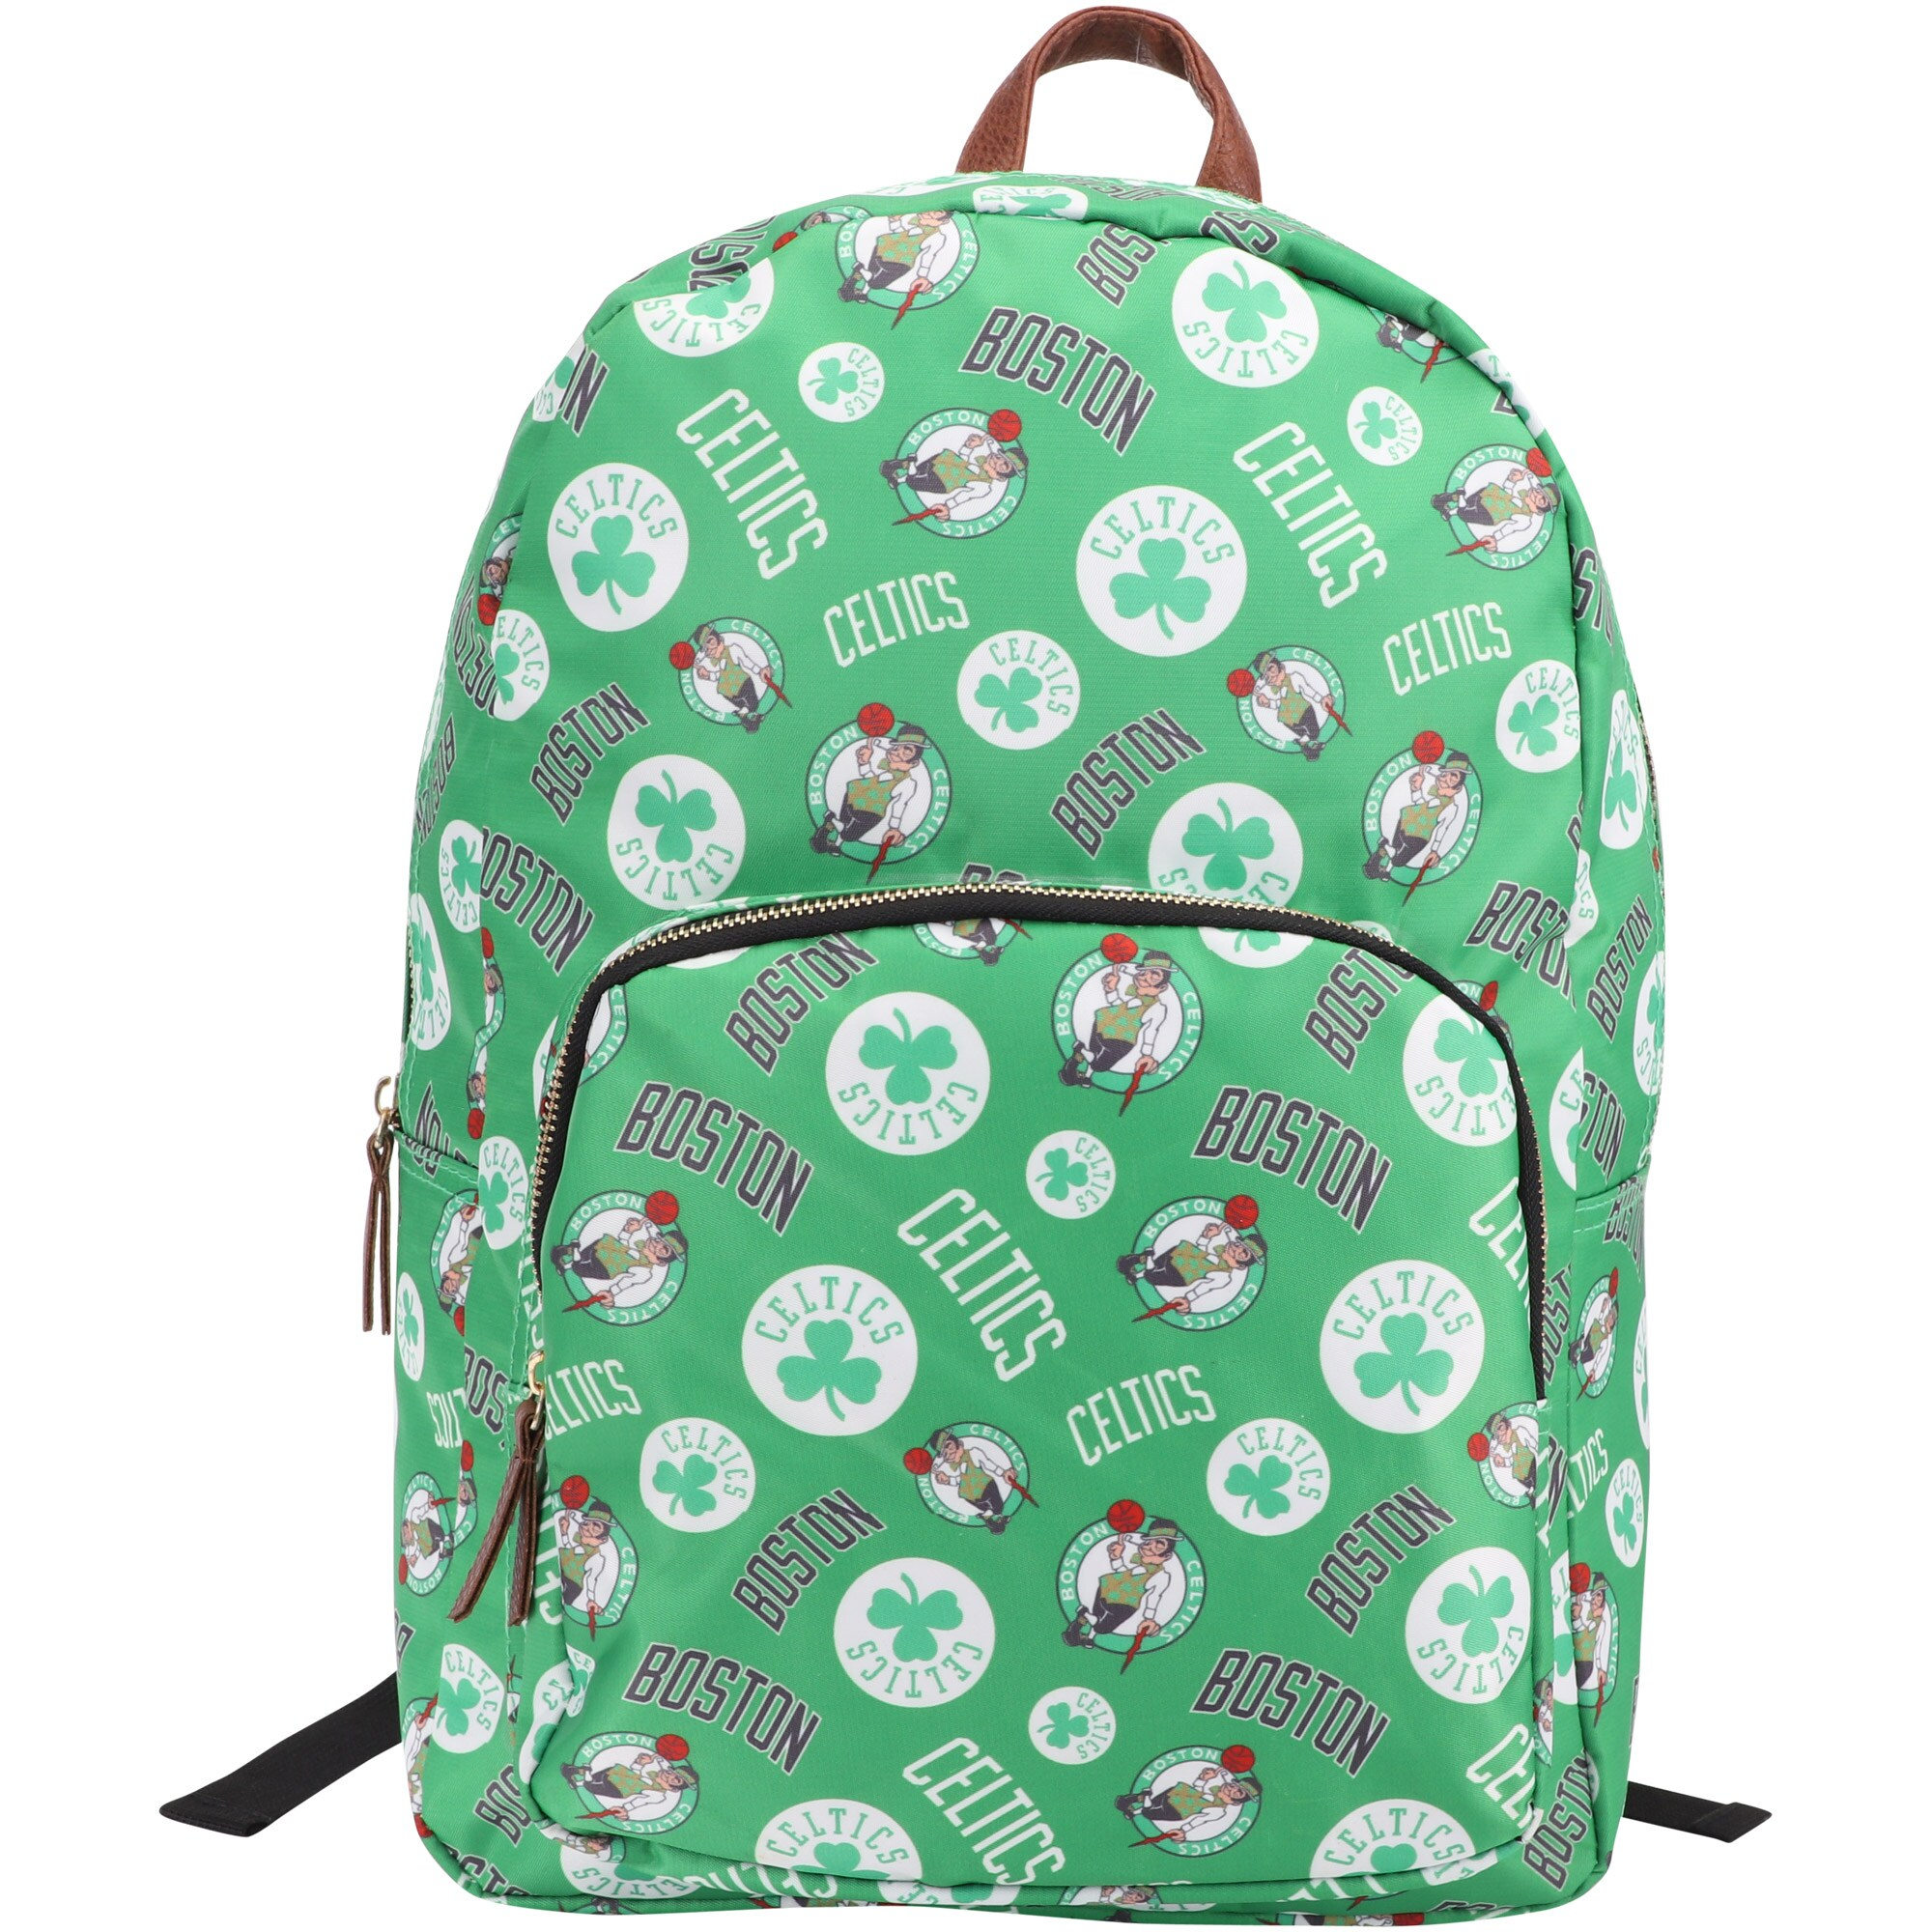 Boston Celtics Printed Collection Backpack